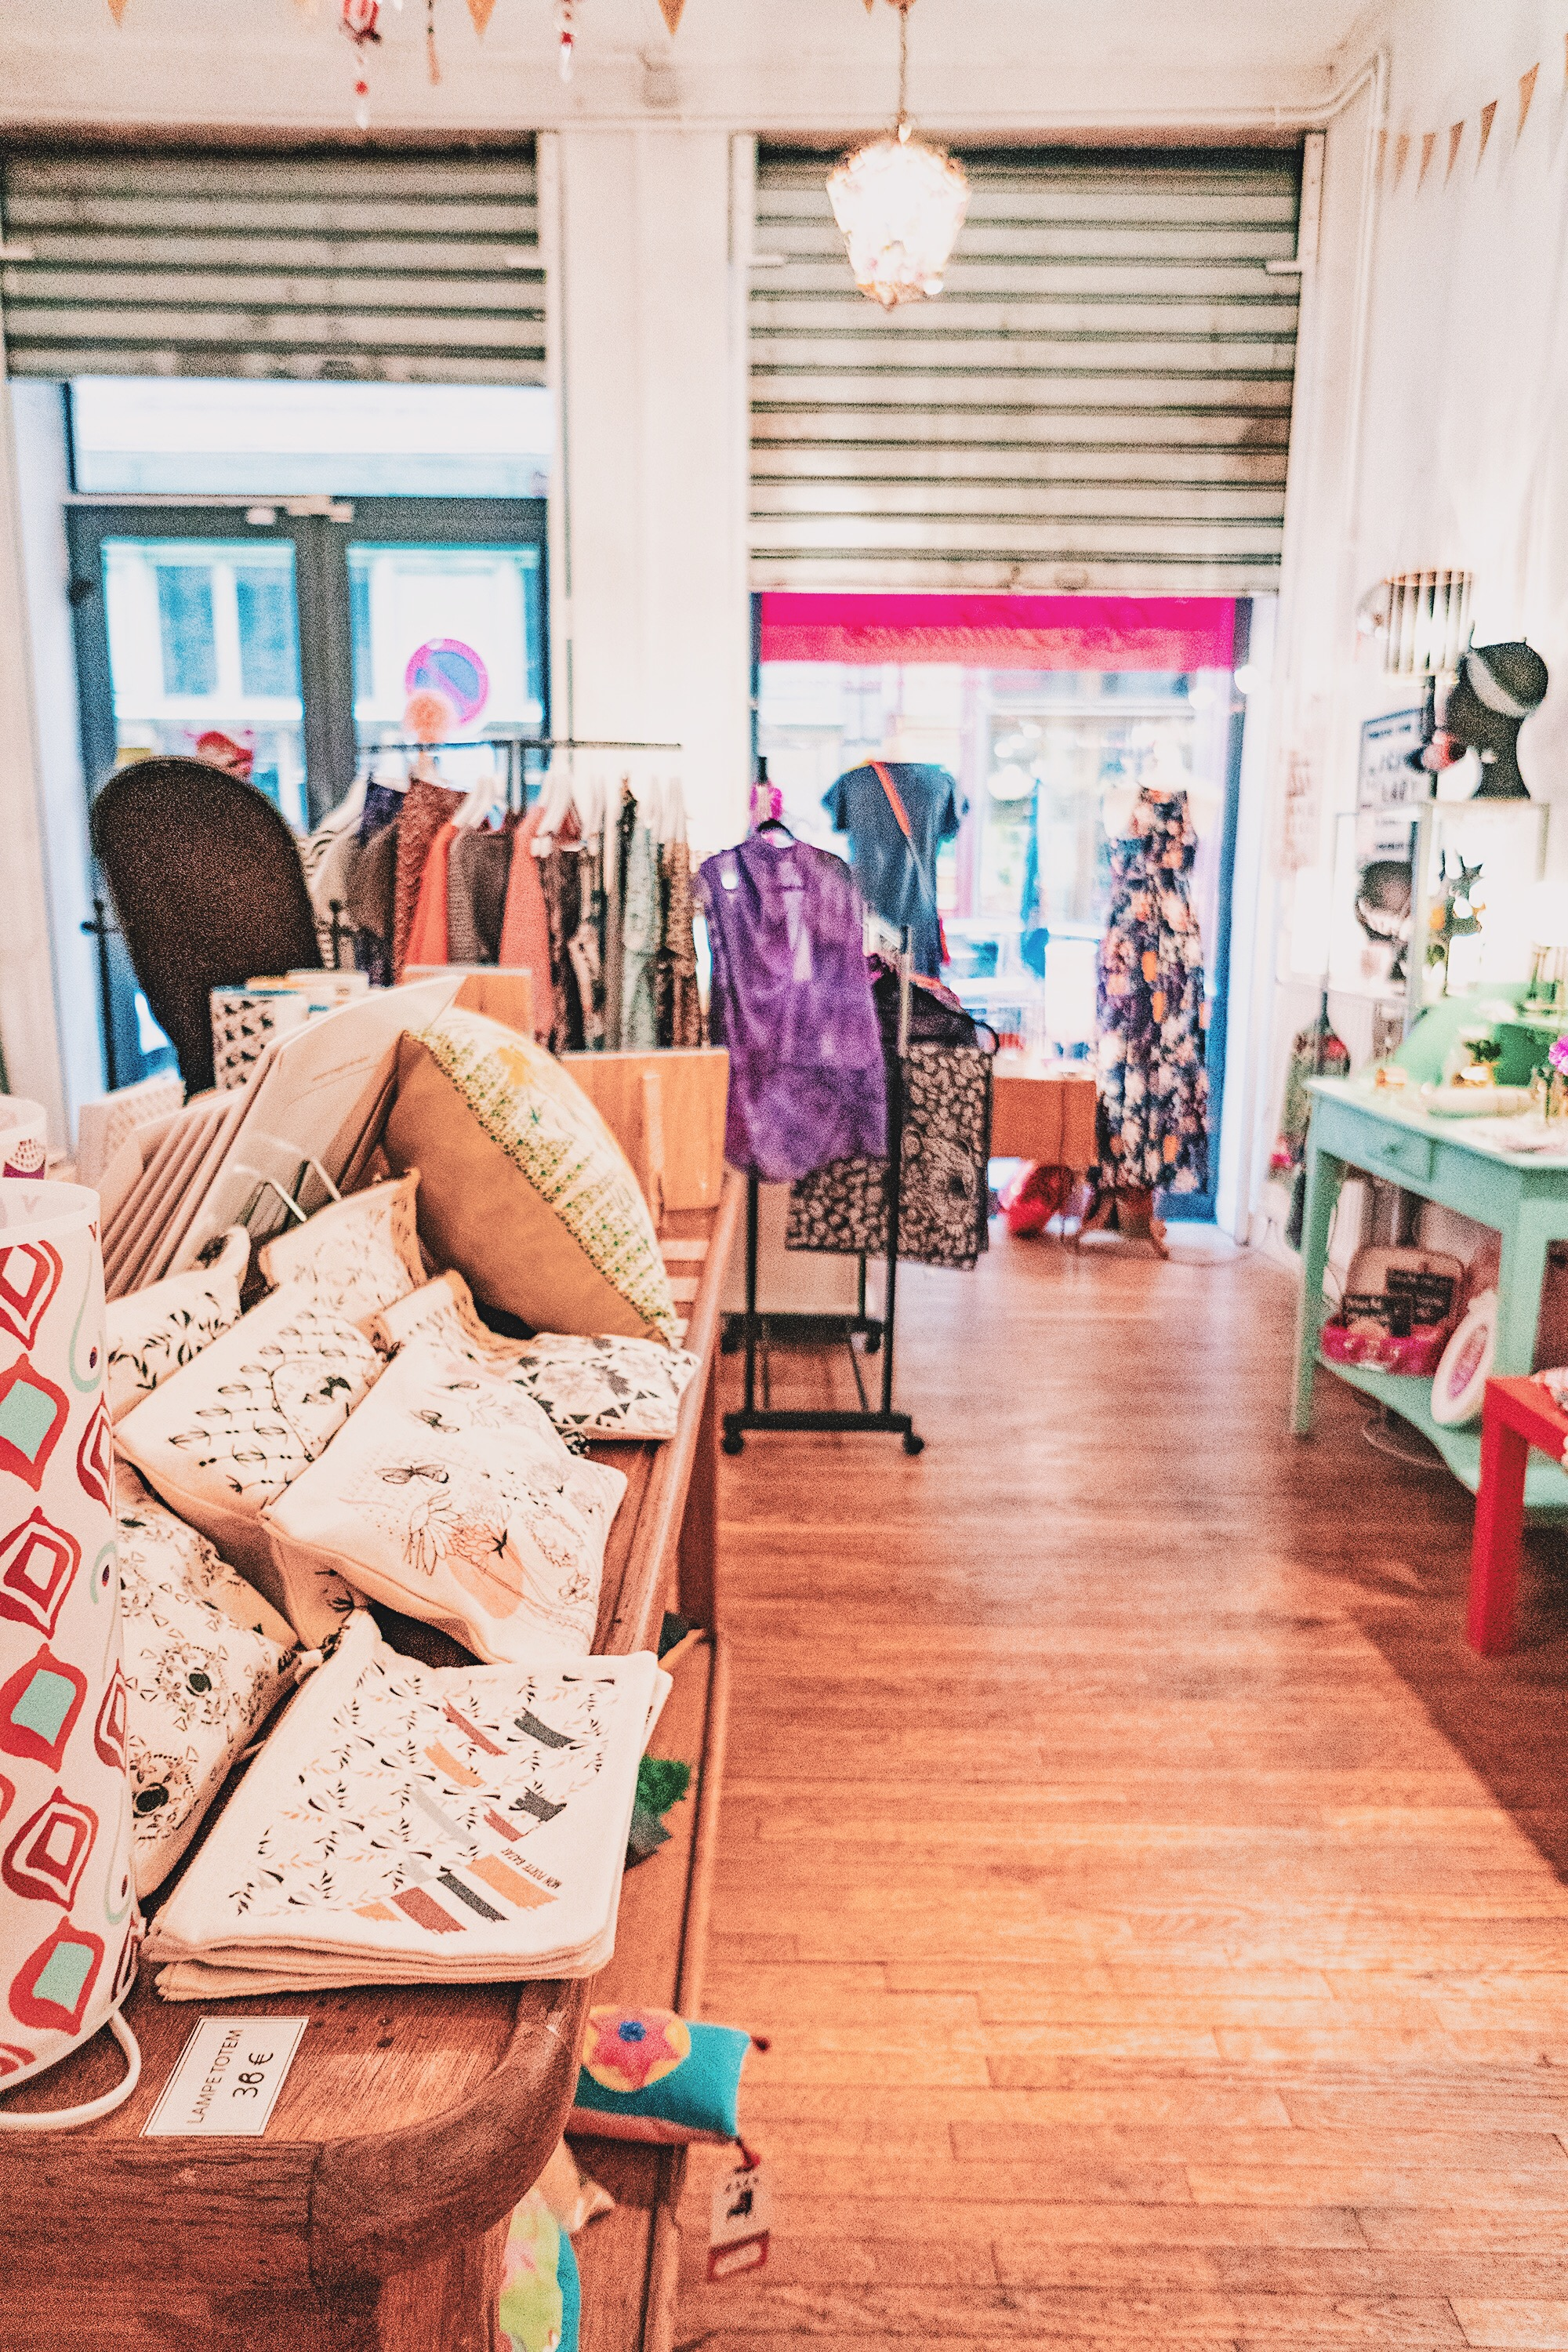 "All stockists in this shop are french artists and designers. They carry beautiful airy ruffly ""knickers"" in colorful prints and patterns. Really regret not getting a pair!"